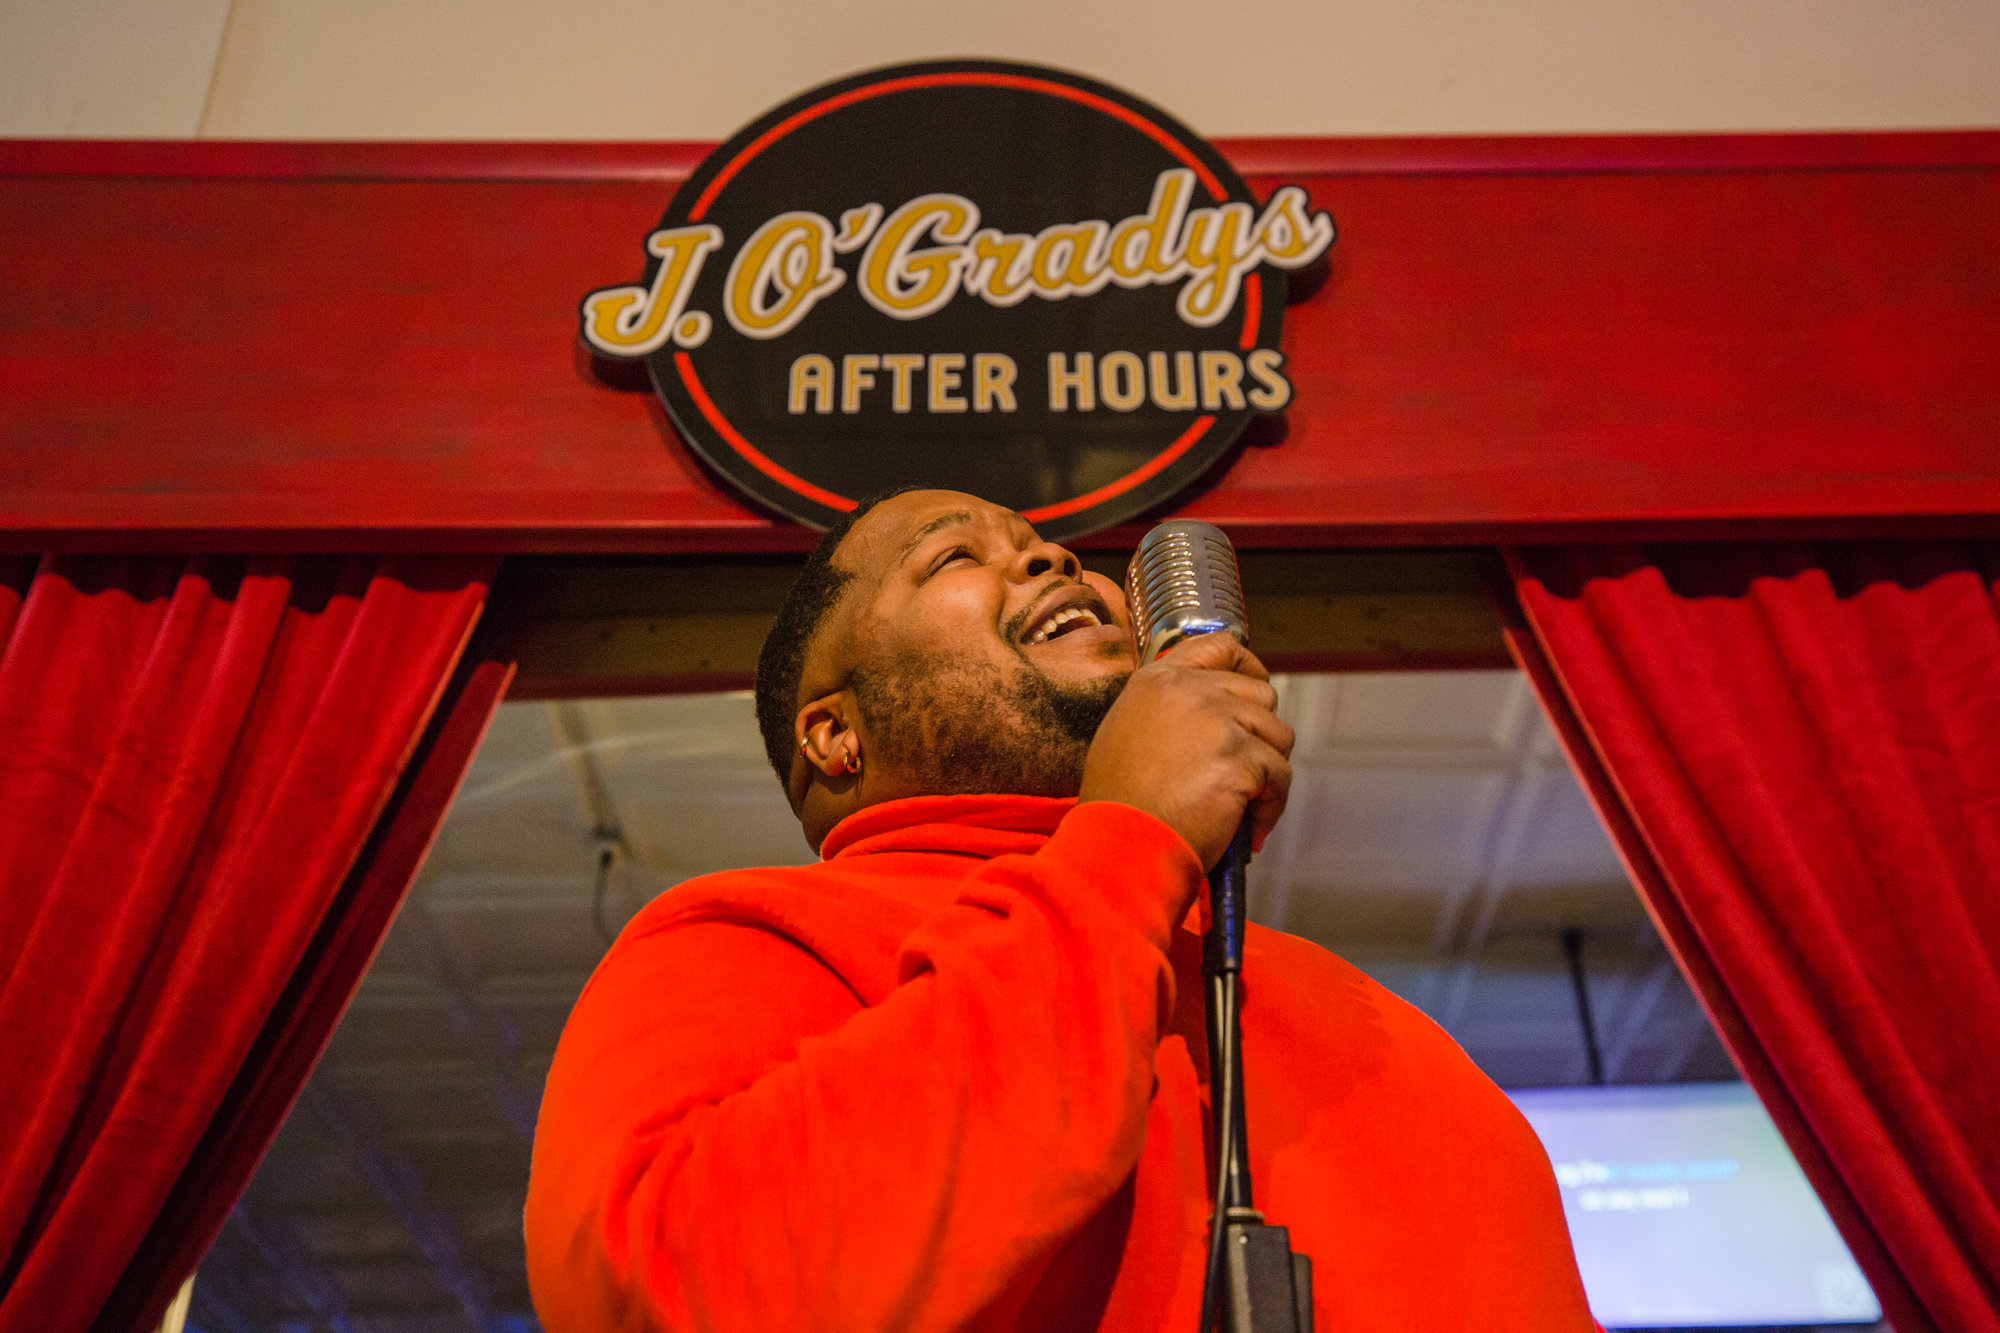 Christopher Conyers sings to the crowd at J. O'Grady's After Hours on Thursday night.